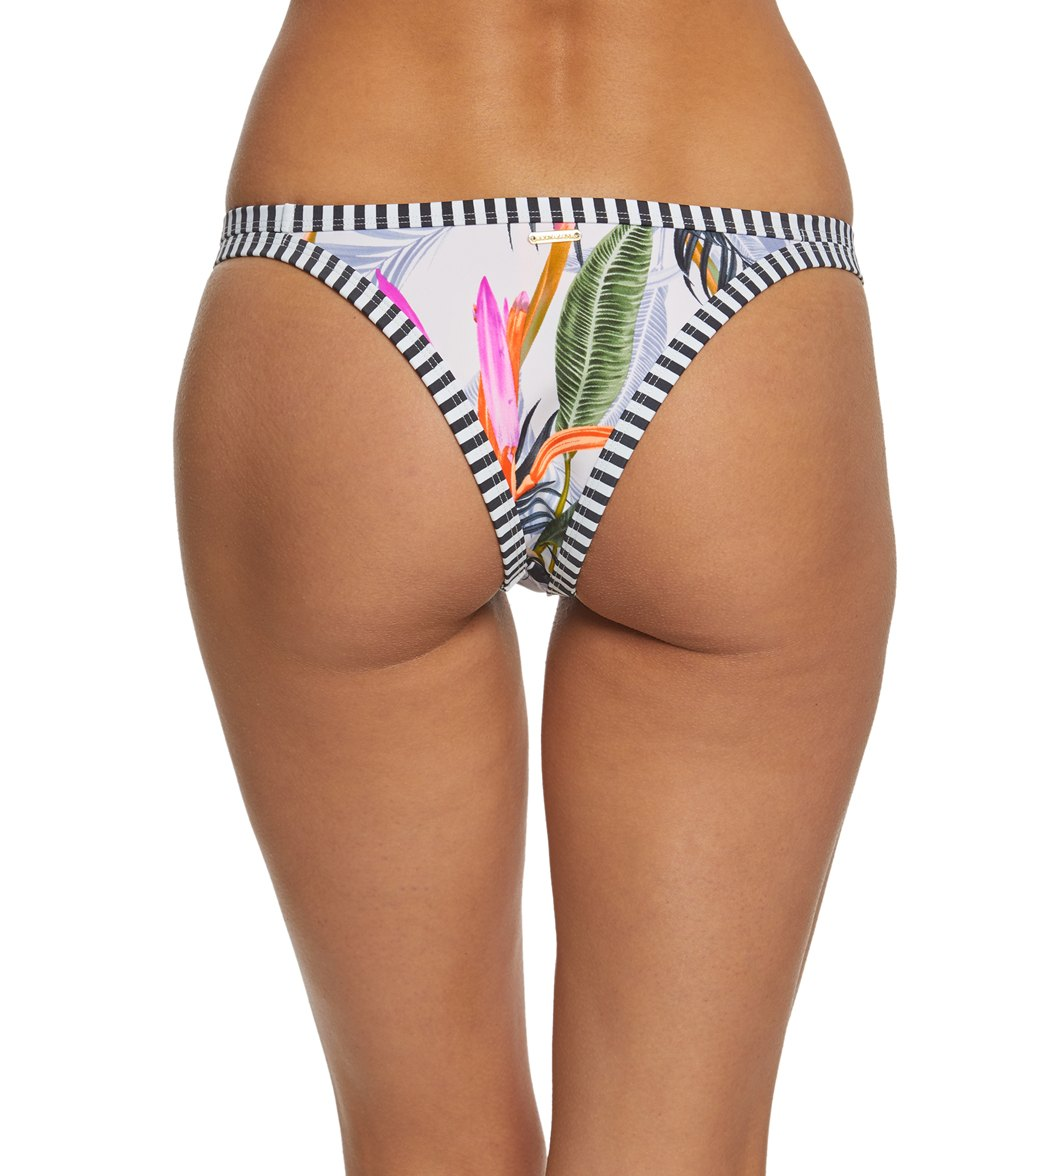 3130315a5e Body Glove Litz Fiji Bikini Bottom at SwimOutlet.com - Free Shipping